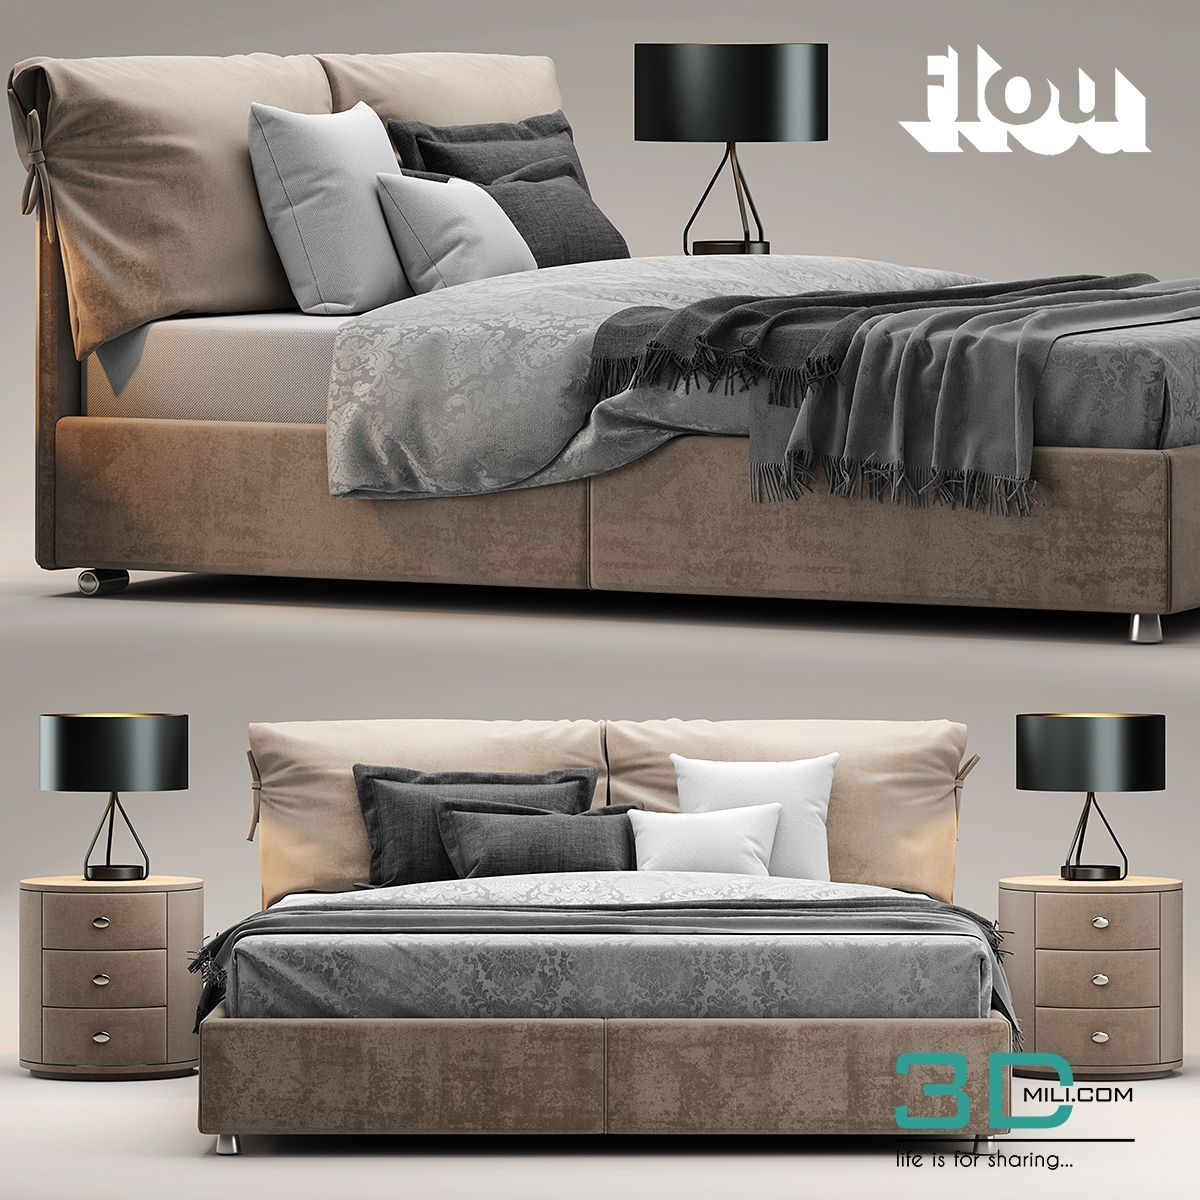 cool 94. Bed flou Letto Nathalie Download here: http://3dmili.com ...